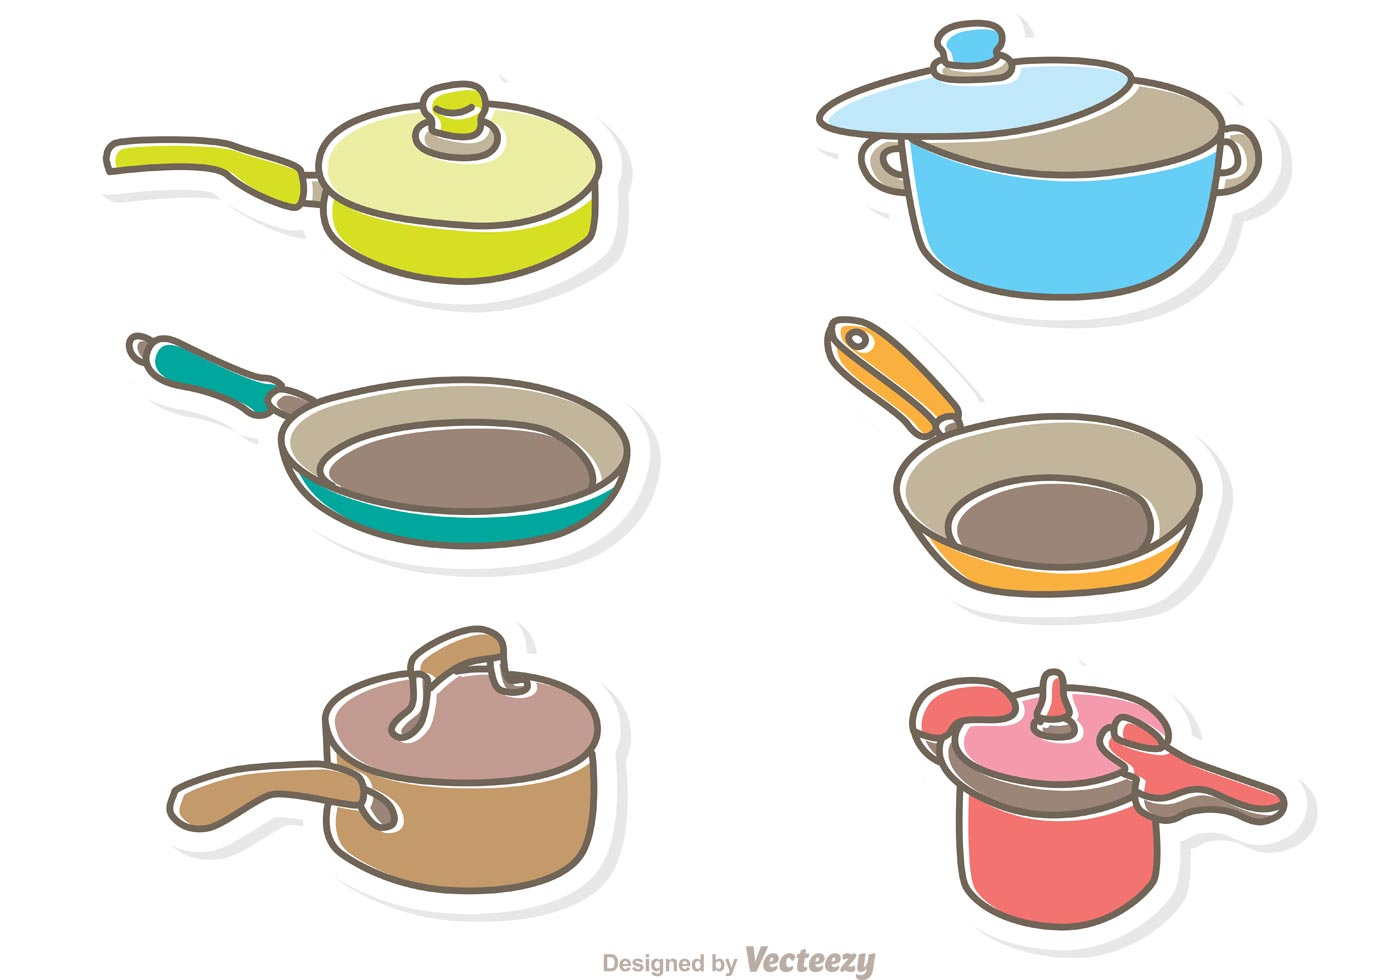 Cartoon Images Of Pots And Pans | Adultcartoon.co